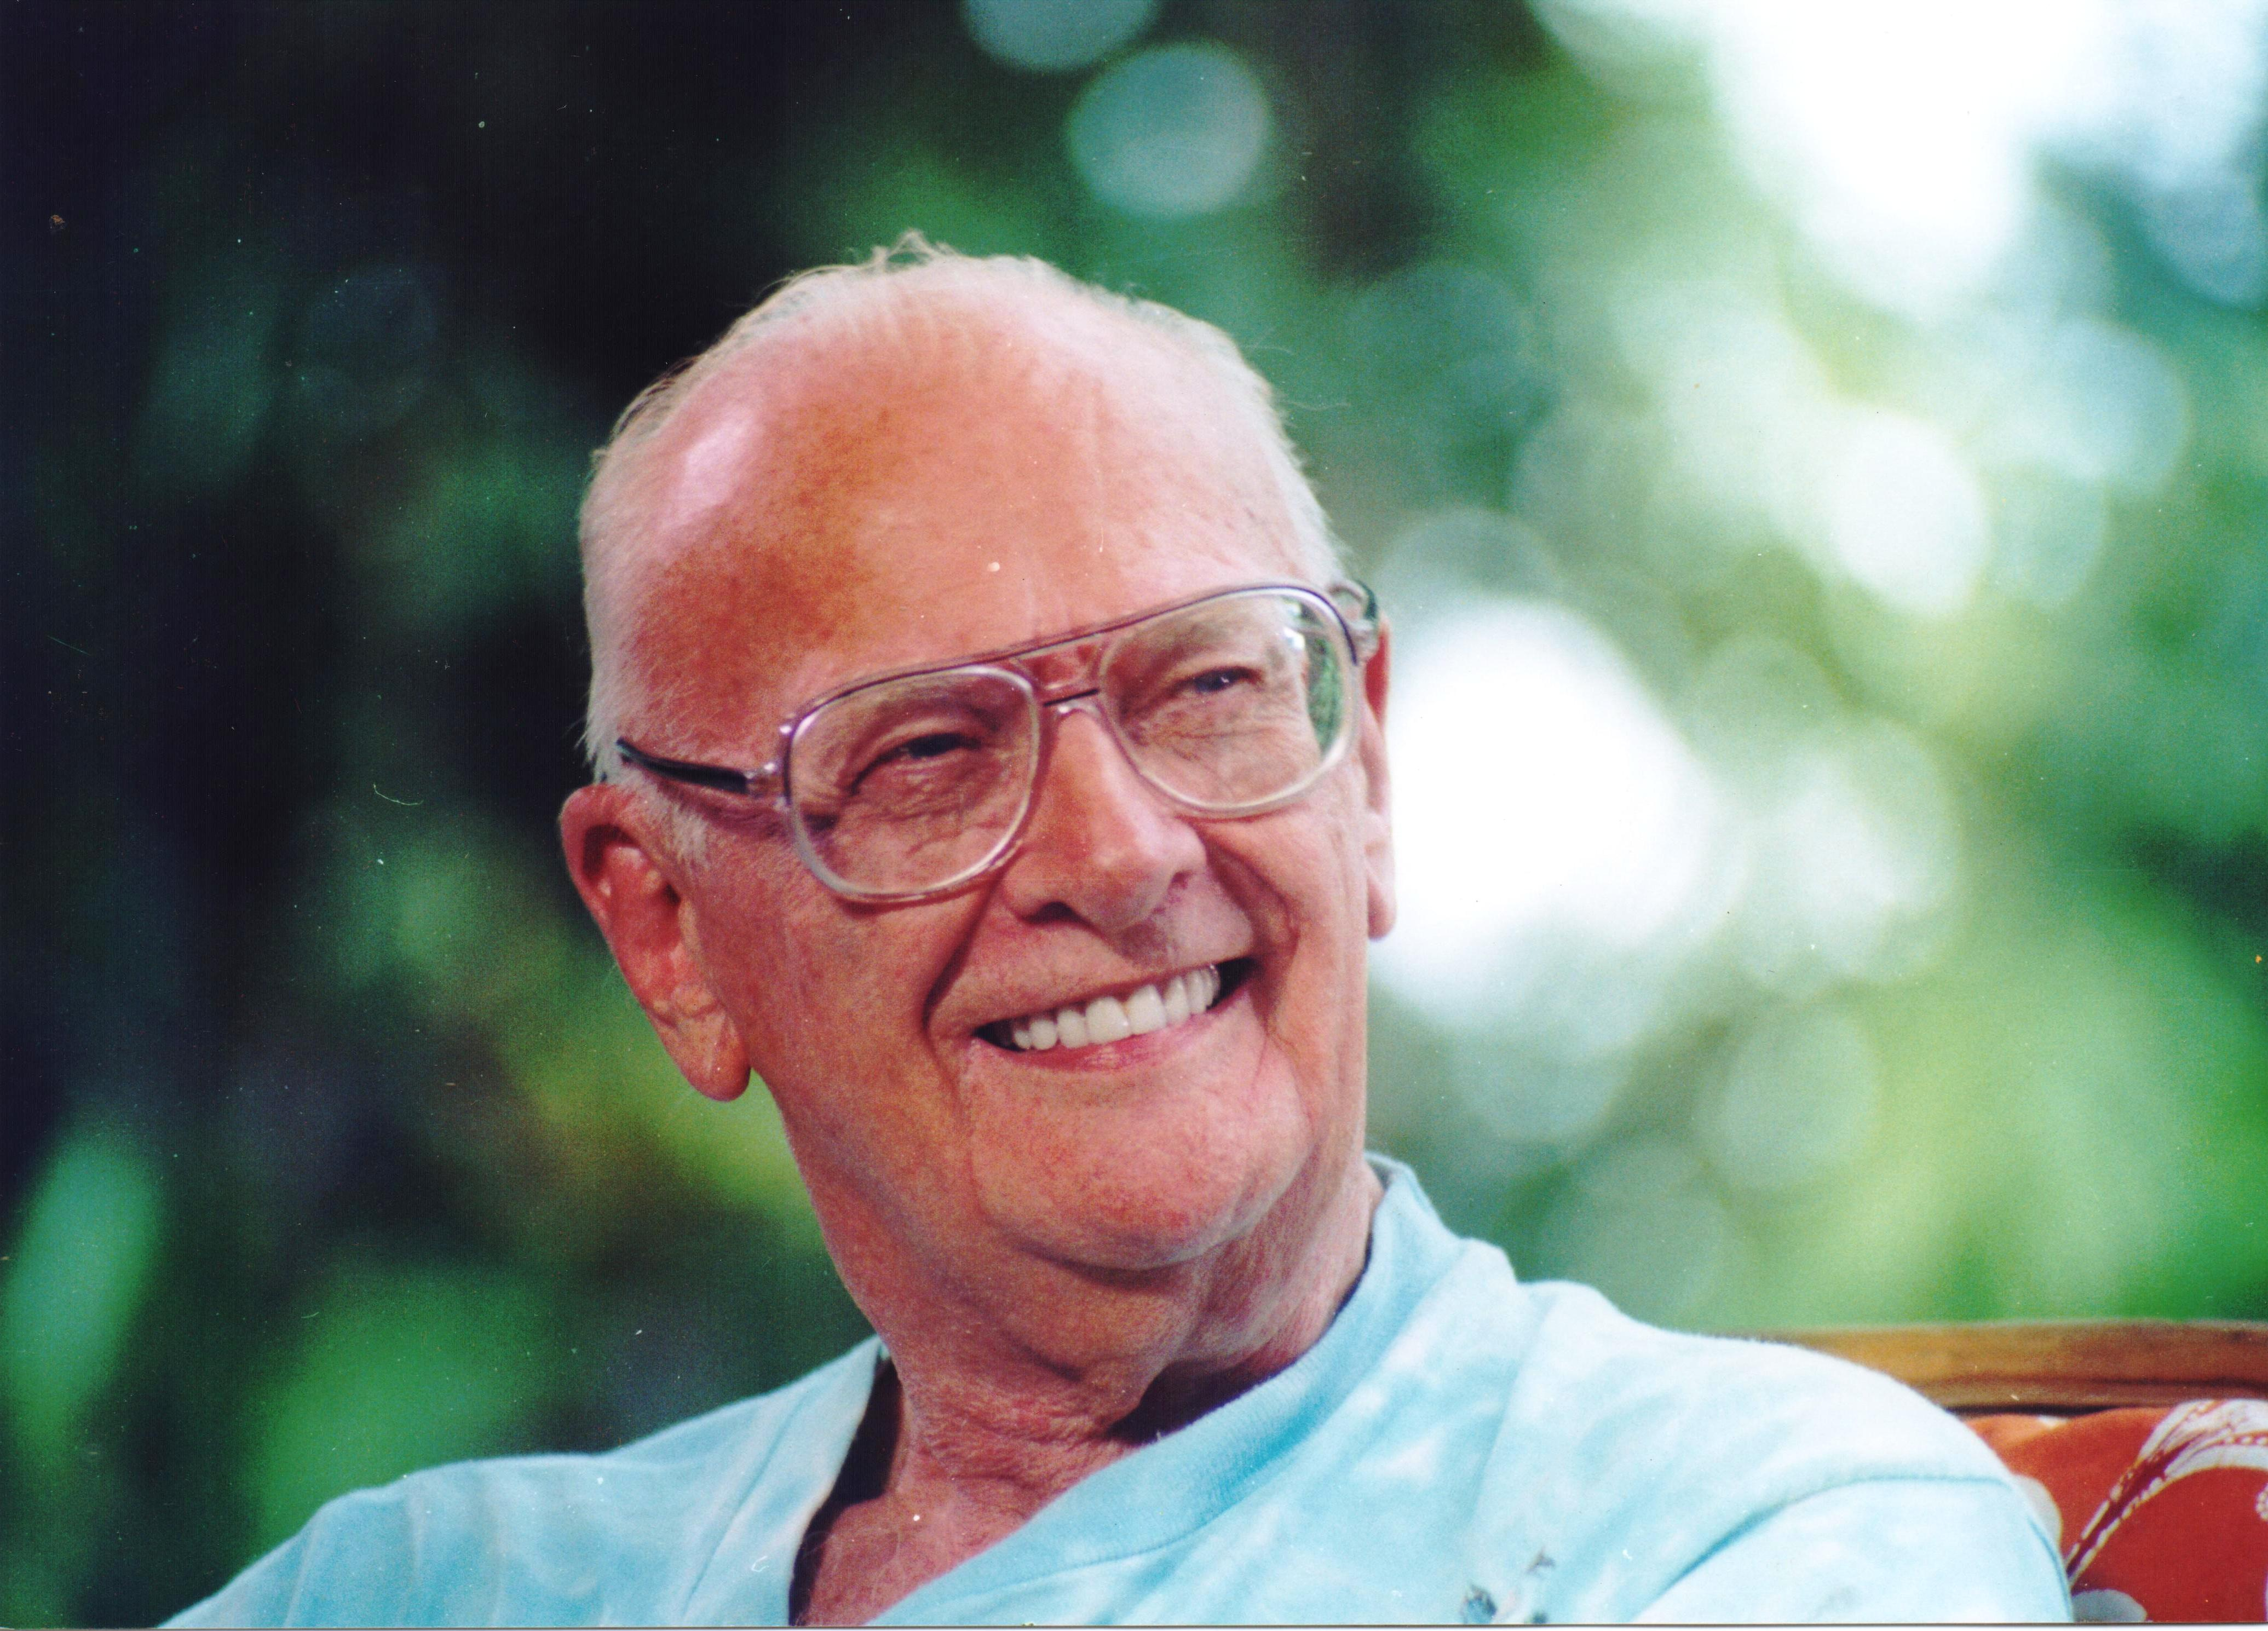 Arthur C Clarke (1917-2008) in a relaxed mood at his Colombo home, circa 2001